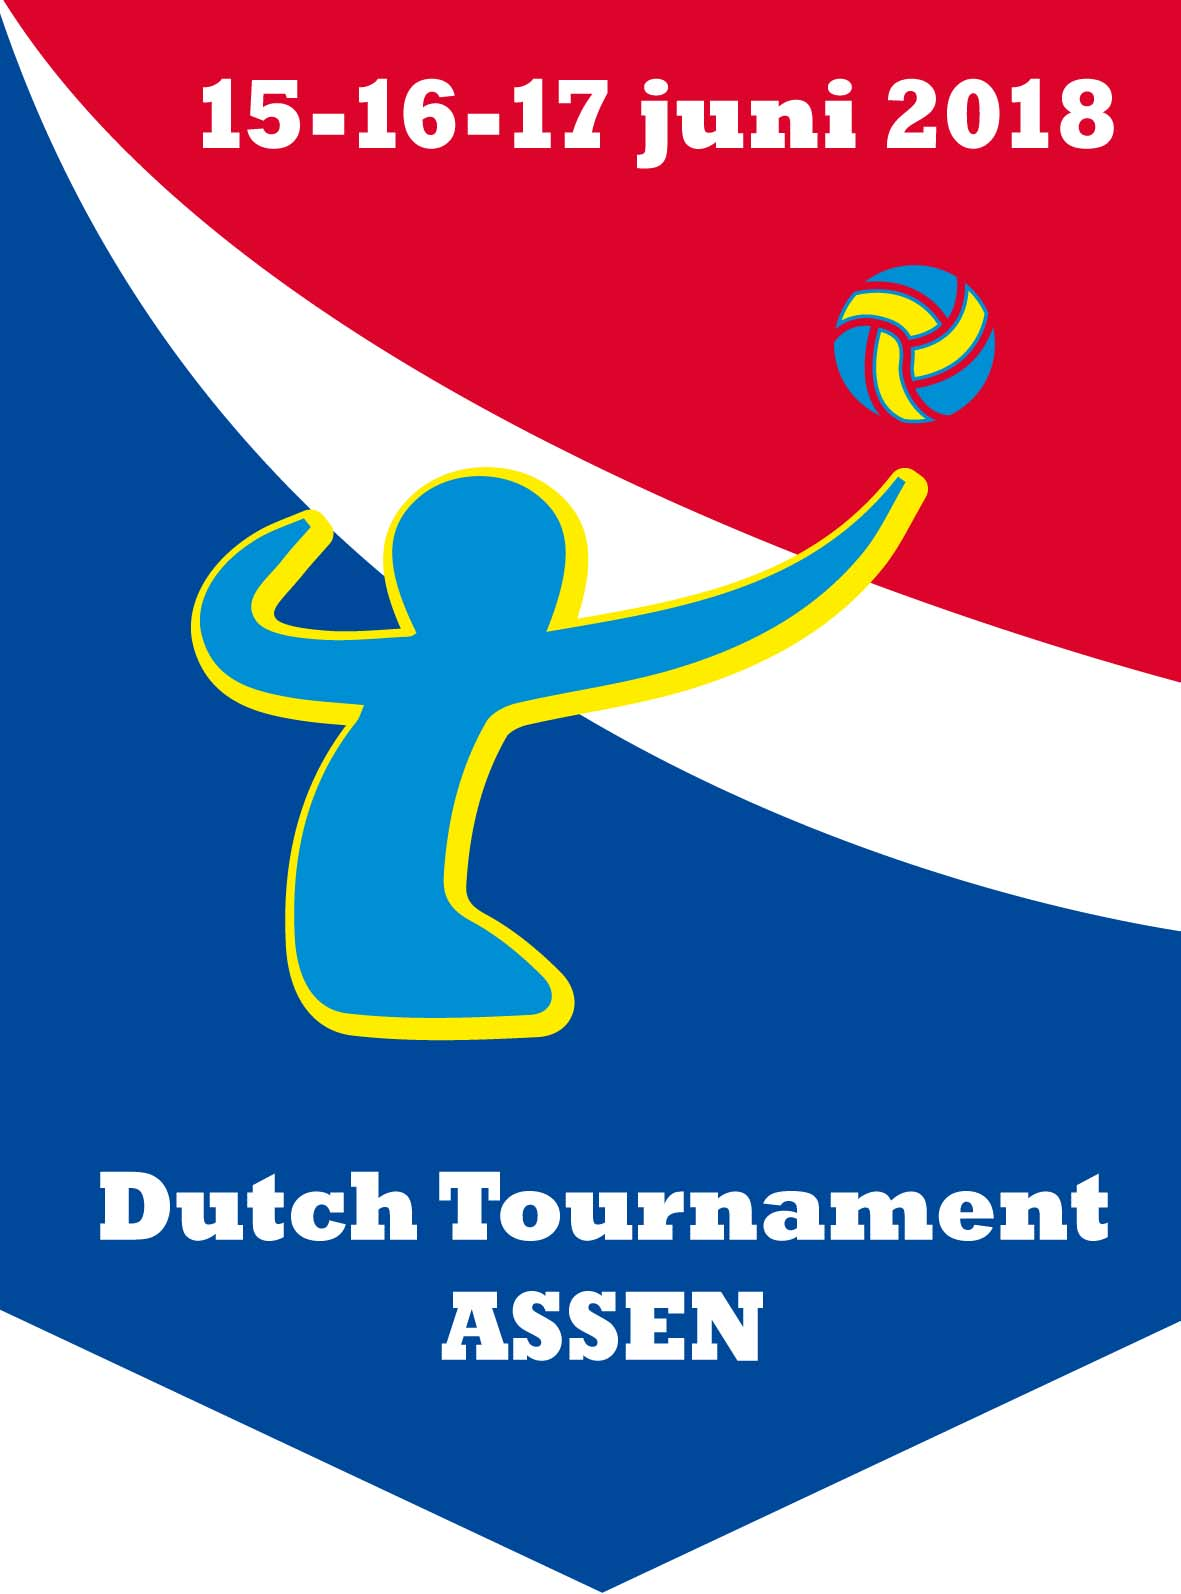 Dutch Tournament 2018